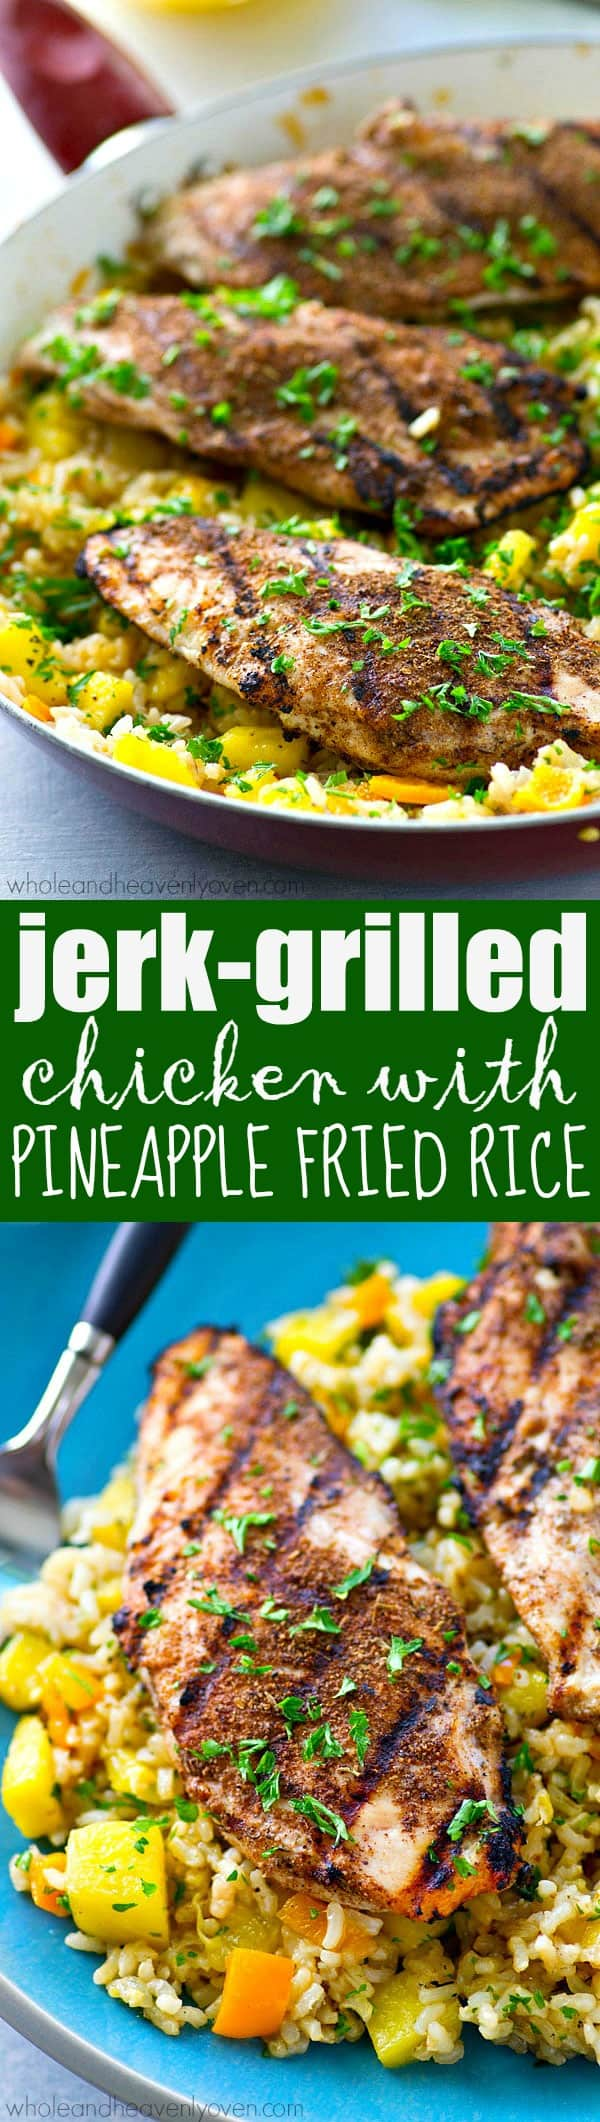 Sweet 'n' spicy grilled jerk chicken is the perfect match for tropical fried rice with plenty of fresh pineapple.---This 20-minute dinner is SO easy to throw together for a busy weeknight.